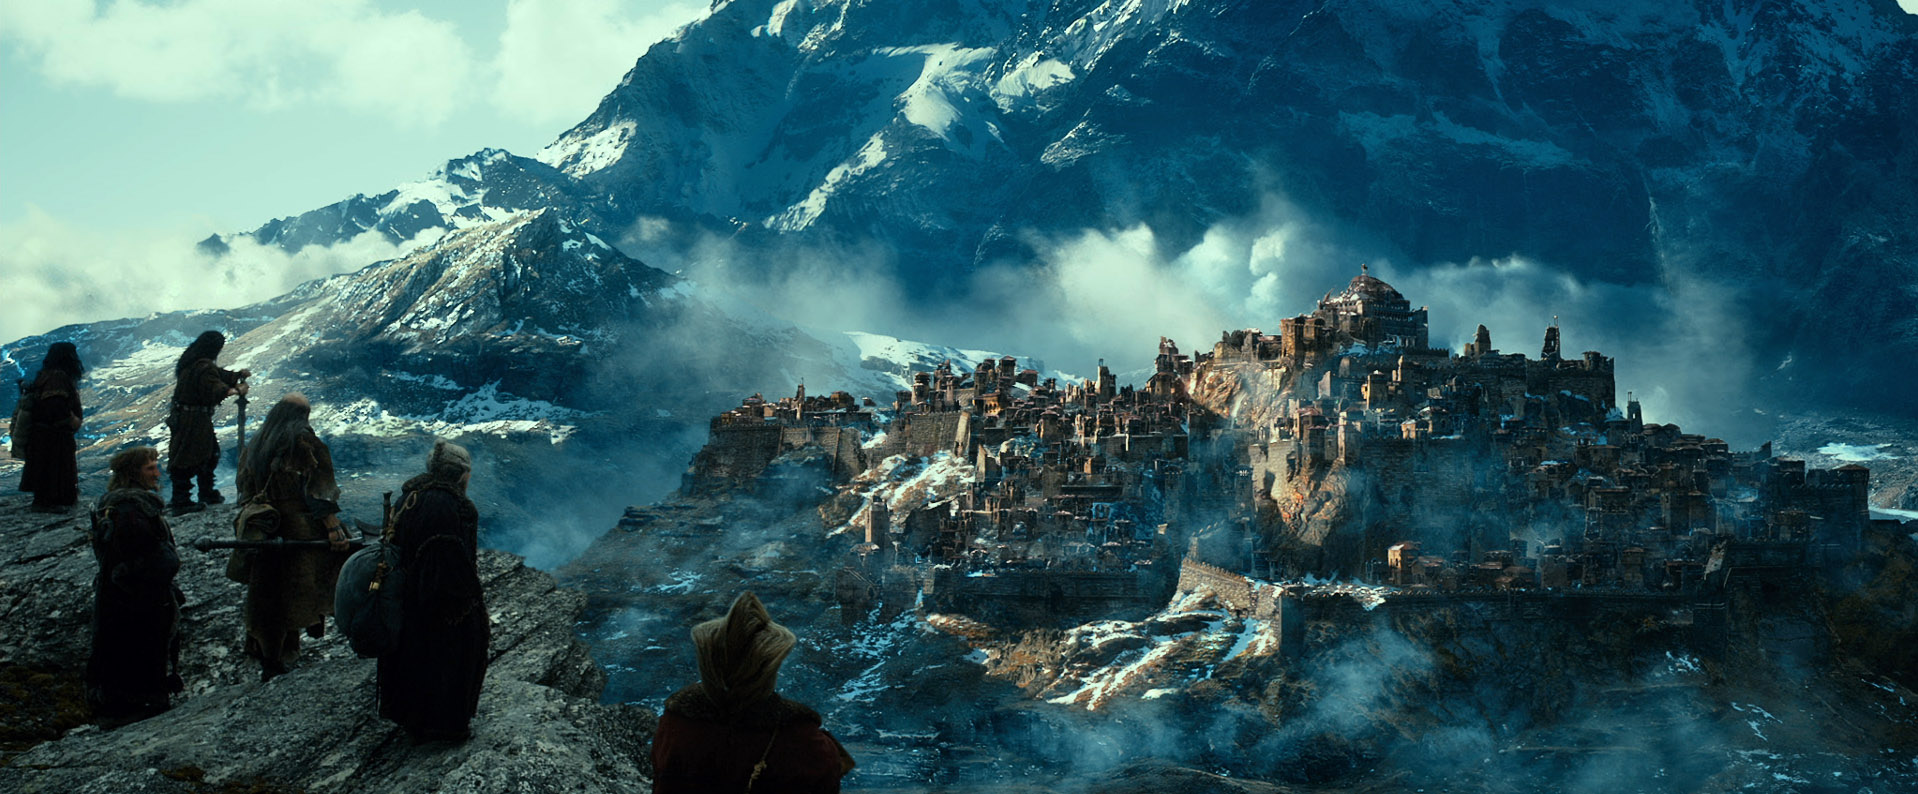 cleek_images_cinema_le_hobbit_landscape